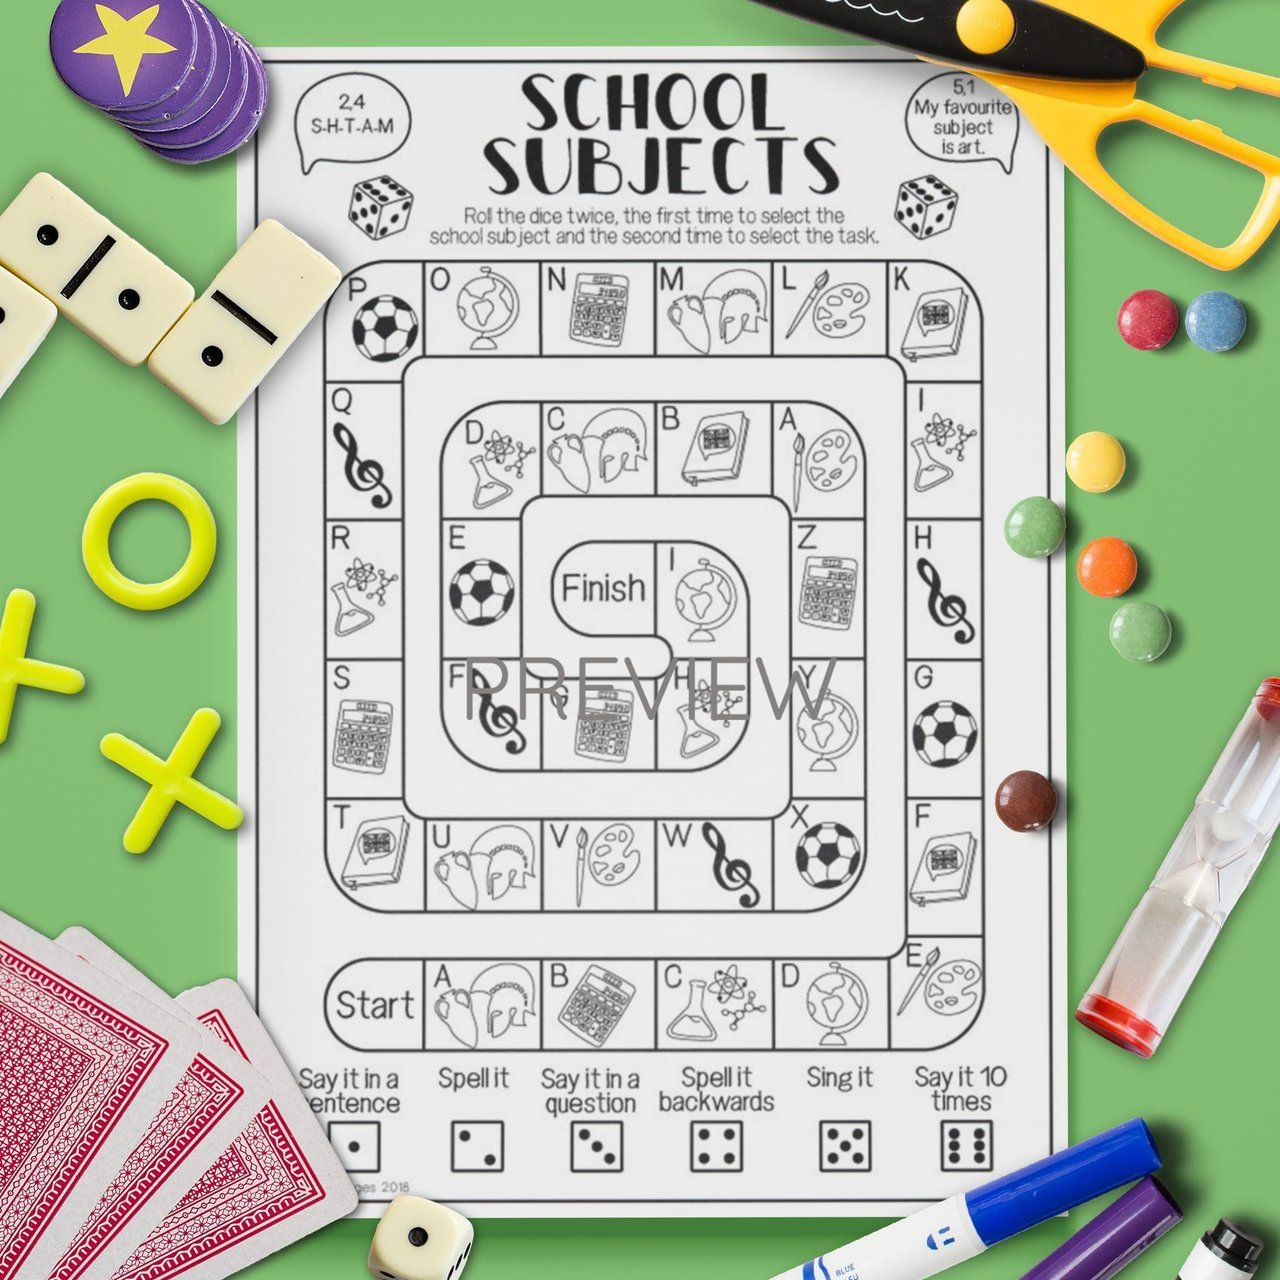 School Subjects Board Game